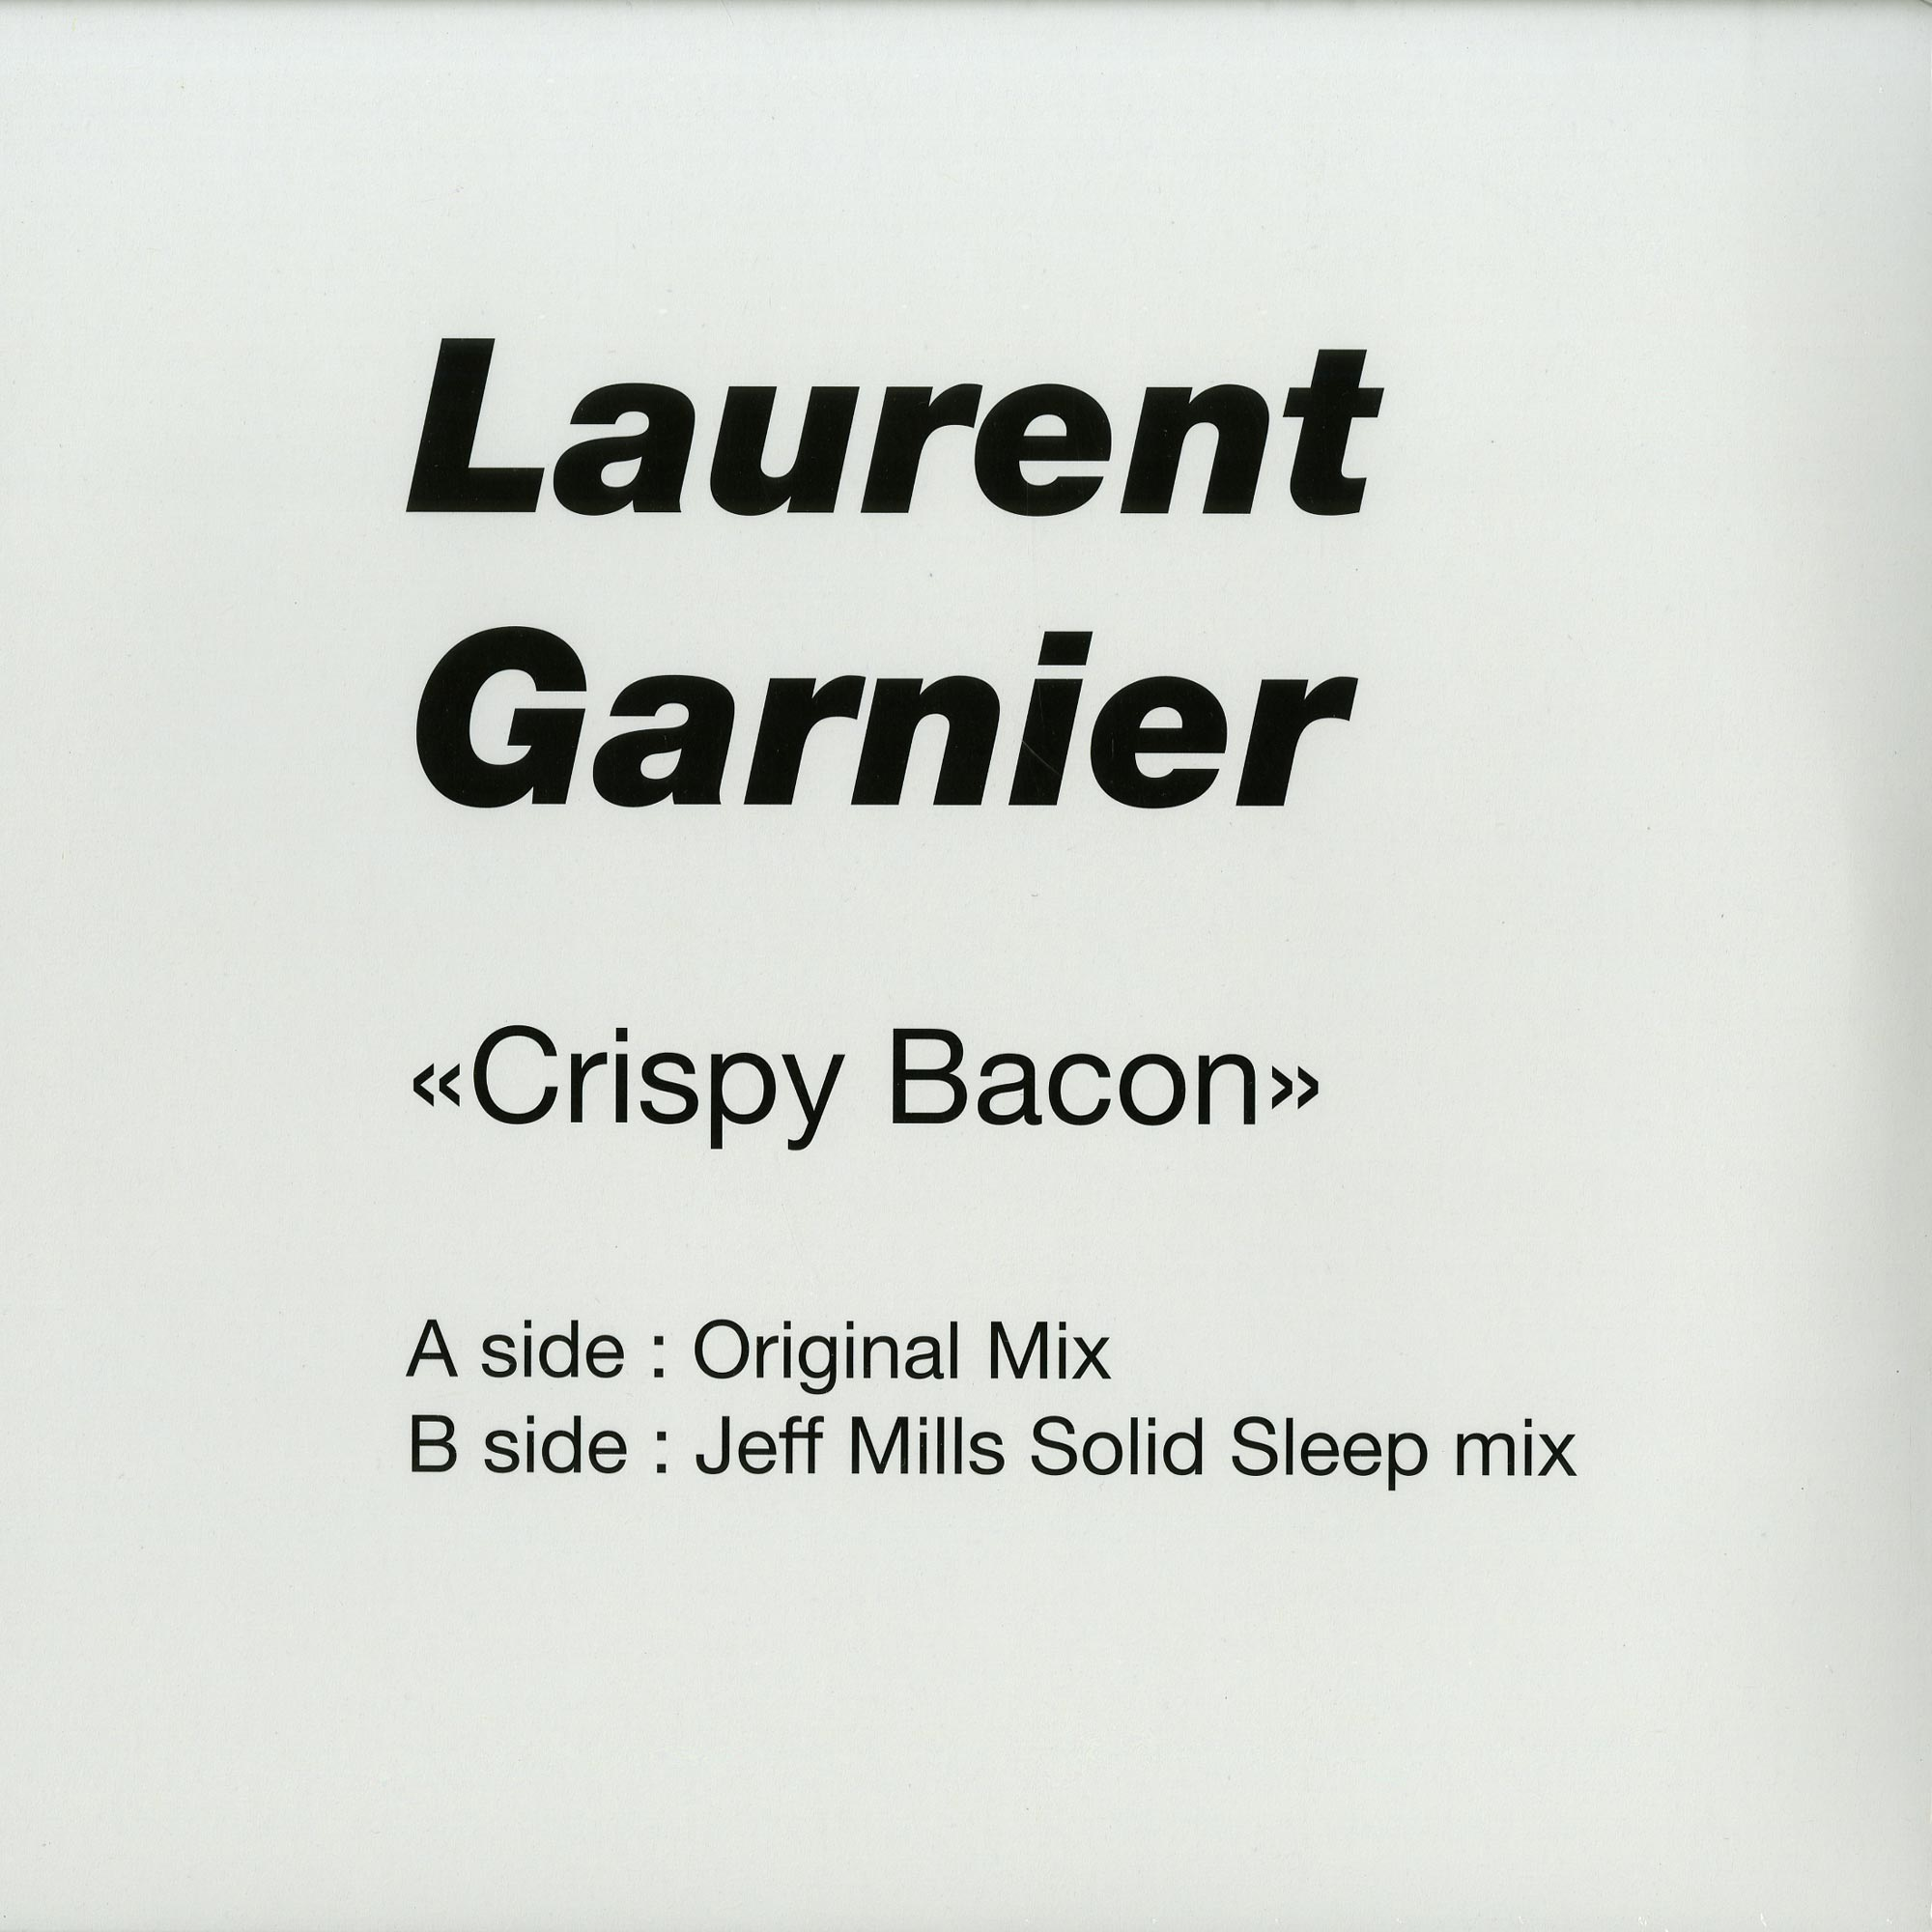 Laurent Garnier - CRISPY BACON